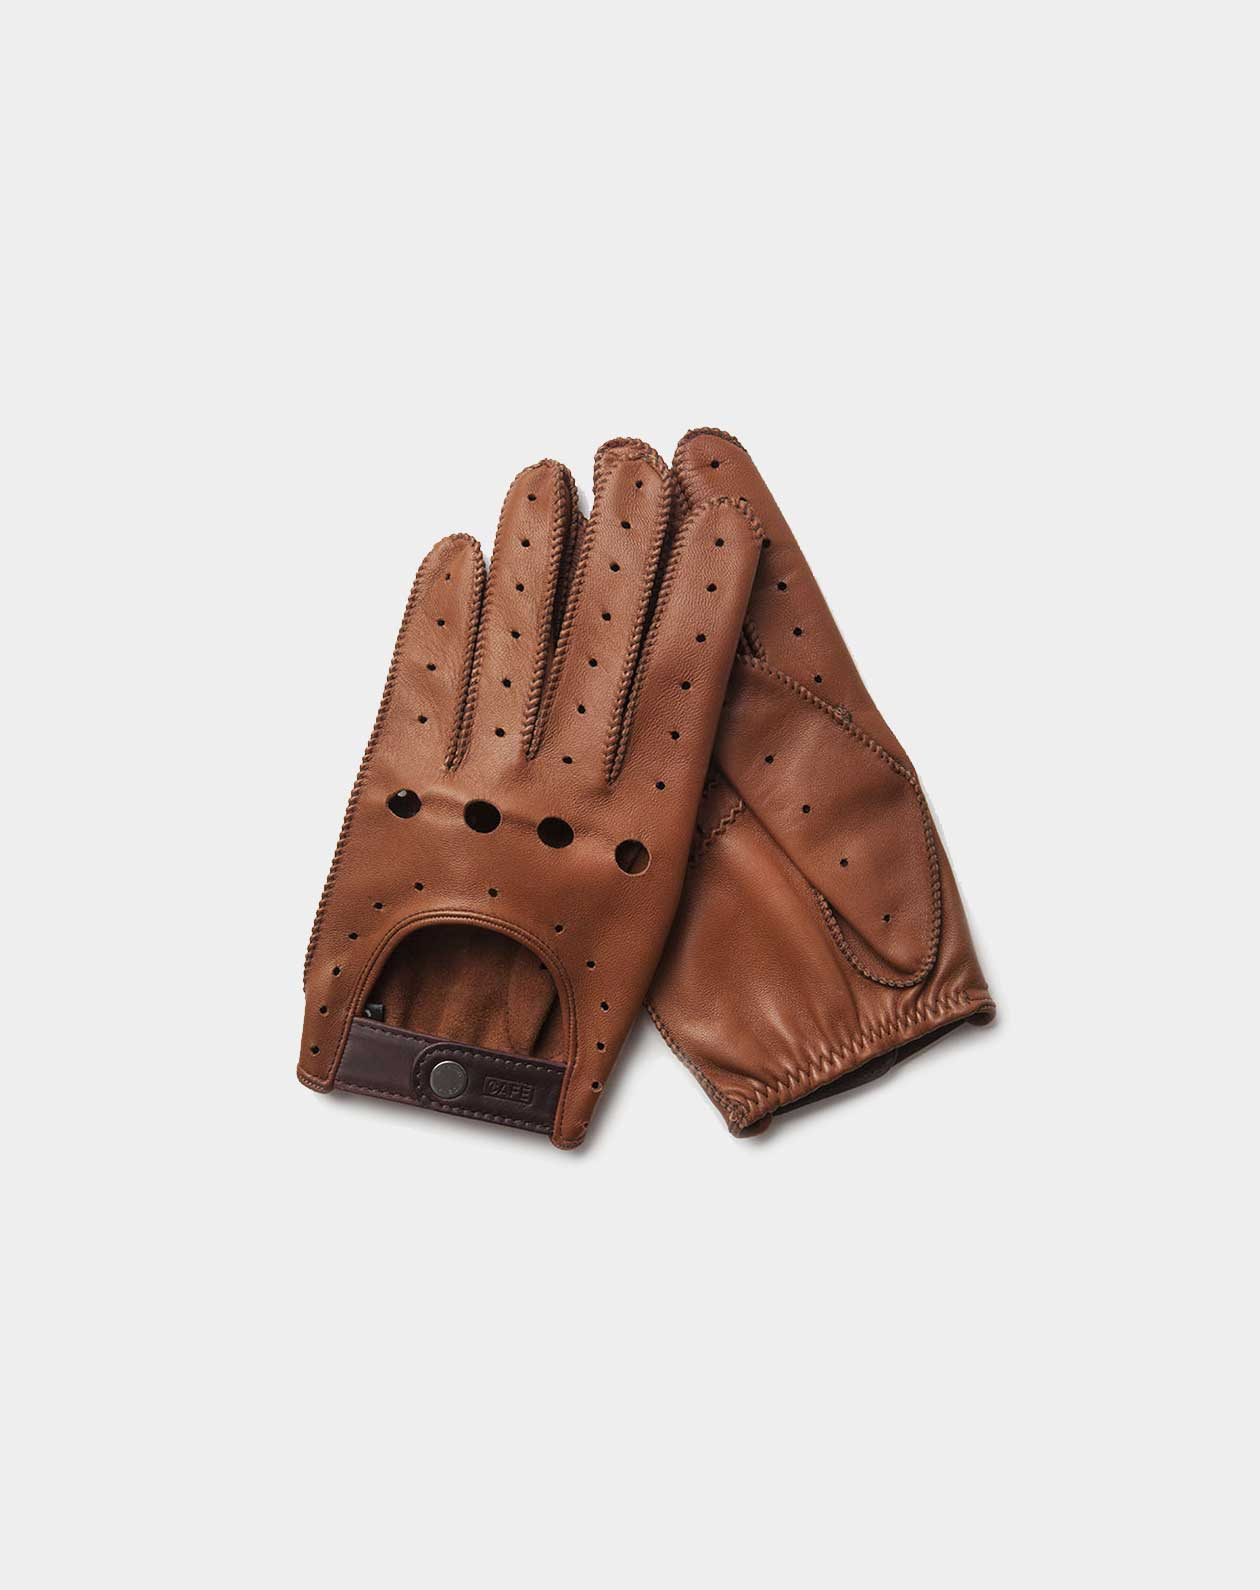 driving gloves brown leather handcrafted in Spain